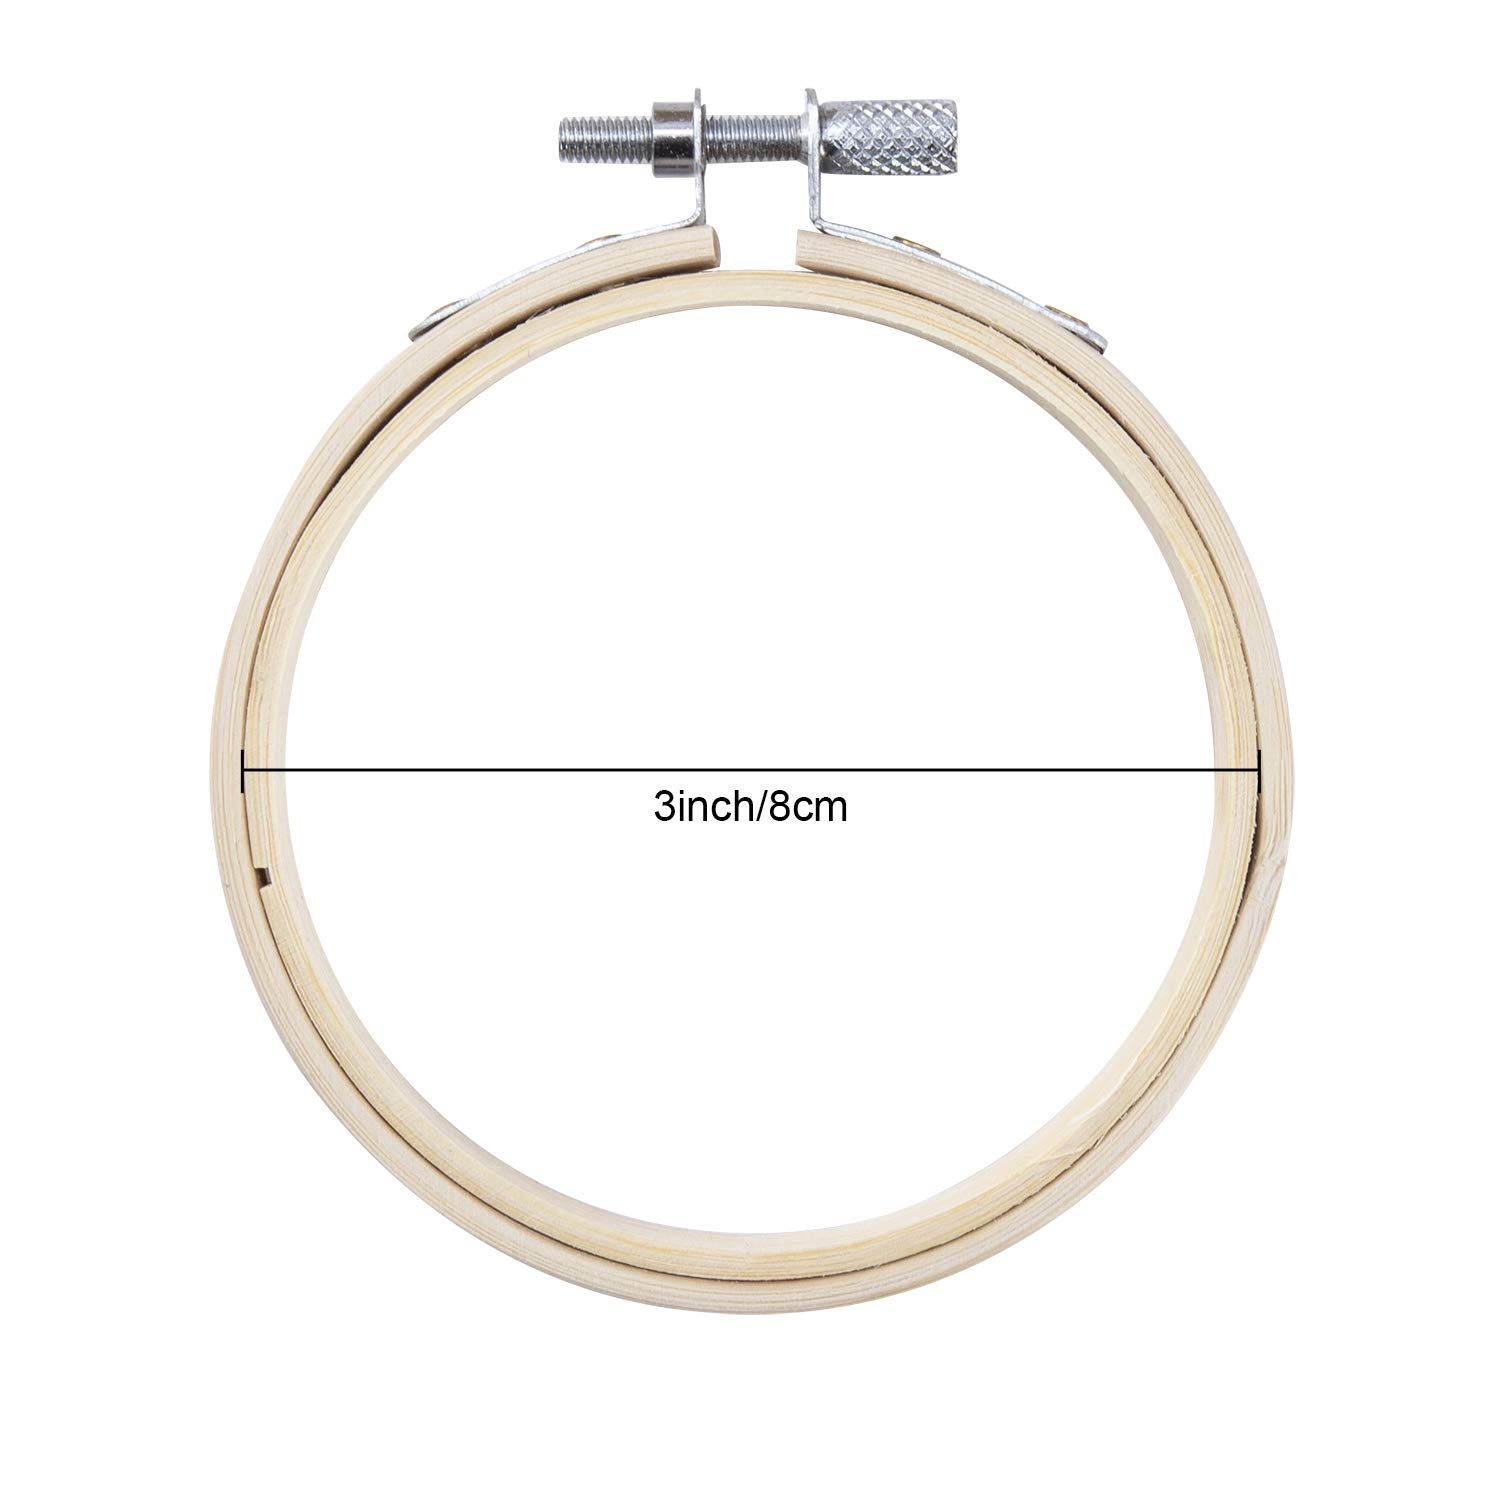 3 inch Waloden 16 Pieces 3 Inch Bamboo Round Embroidery Hoops Cross Stitch Hoop Adjustable Bamboo Circle Cross Stitch Hoop Ring